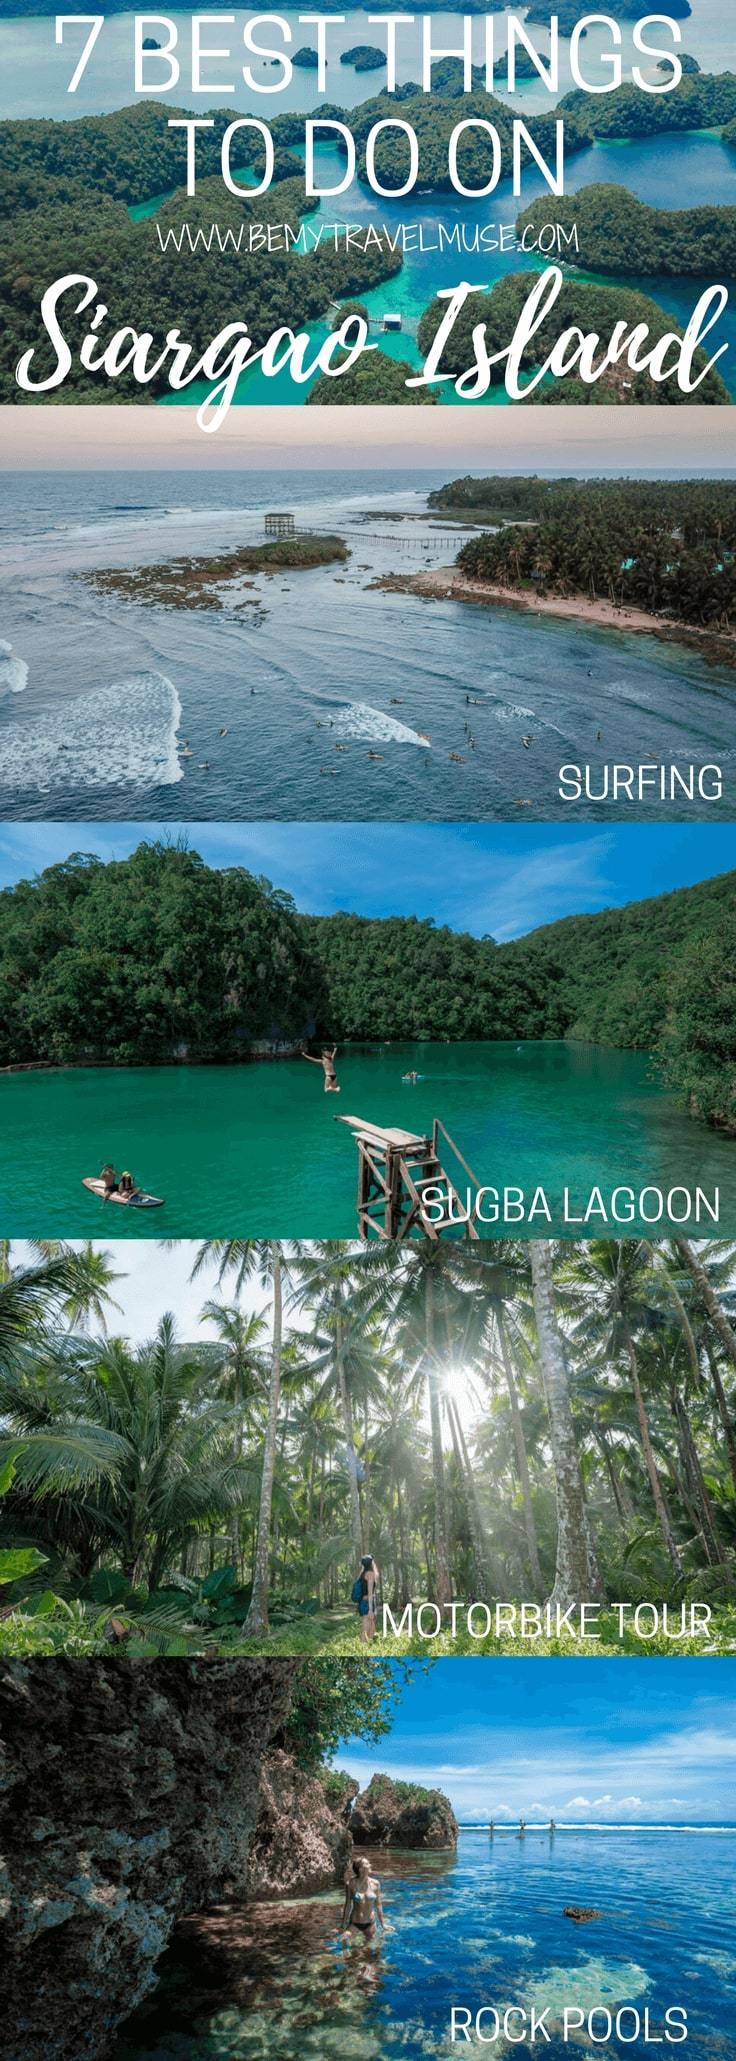 Here are the 7 awesome things to do on Siargao Island, Philippines, with additional information that will make it an awesome itinerary for your Siargao Island adventure! Be My Travel Muse   Solo female travel   Sugba Lagoon   Magpupungko Rock Pools   Philippines island travel